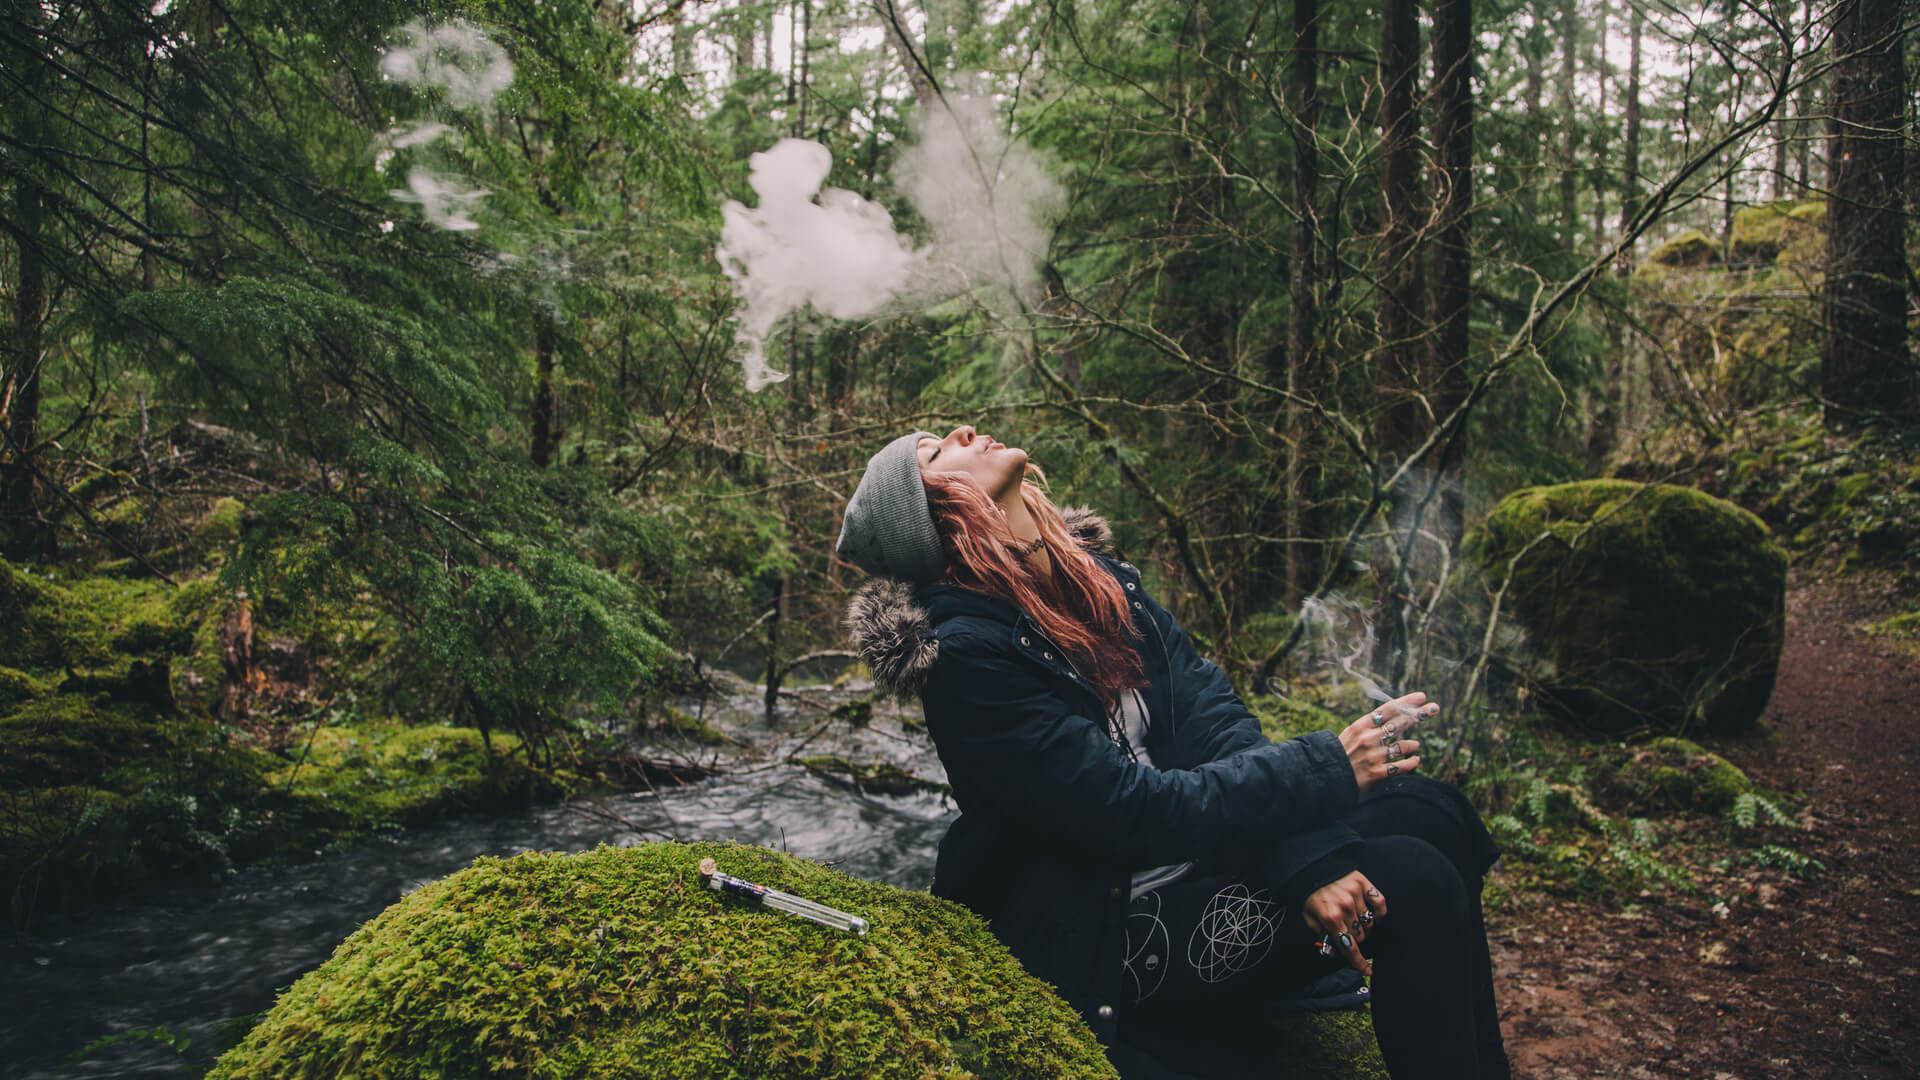 Blonde woman smoking cannabis while hiking in the woods